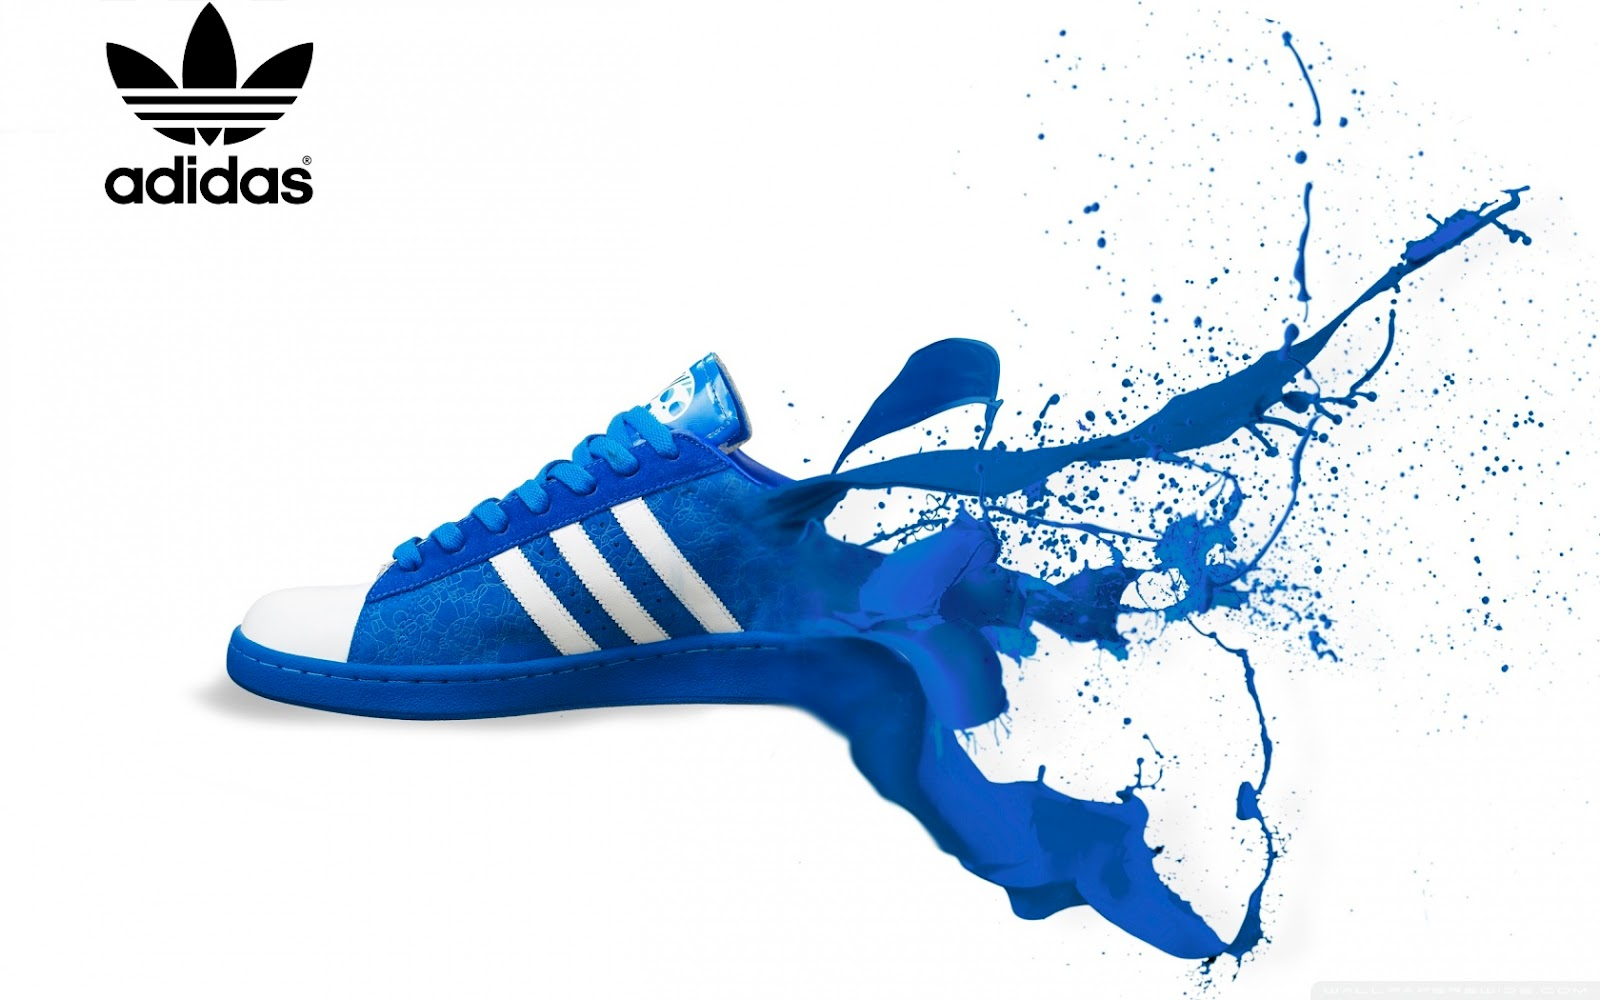 Central Wallpaper Adidas Logo HD Wallpapers 1600x1000